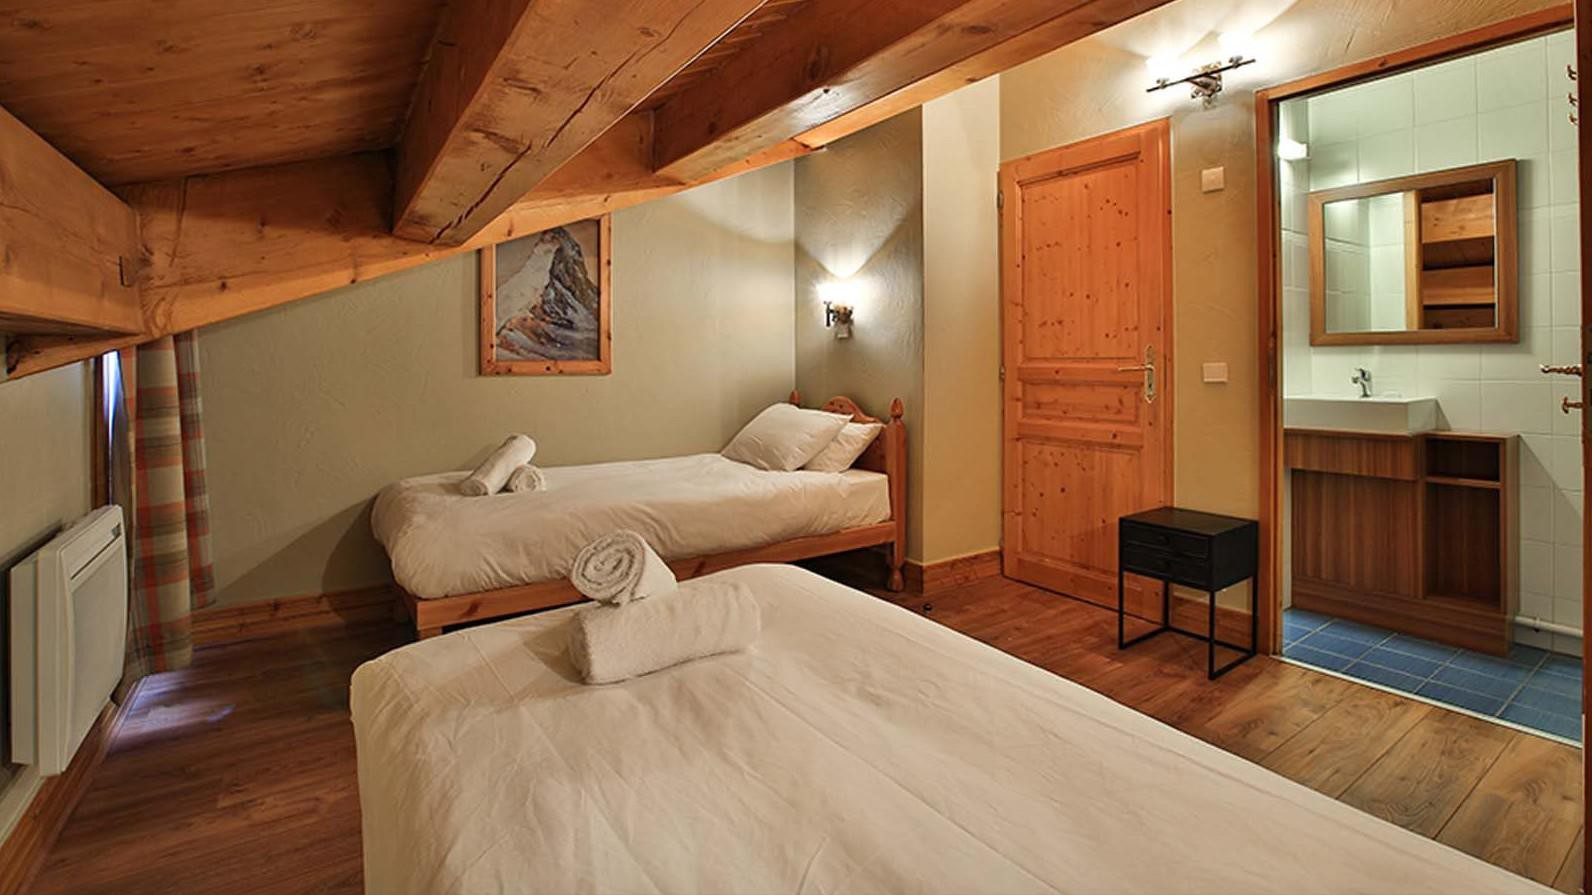 Soleil,_Val Thorens,_france,_bedroom_twin_11634